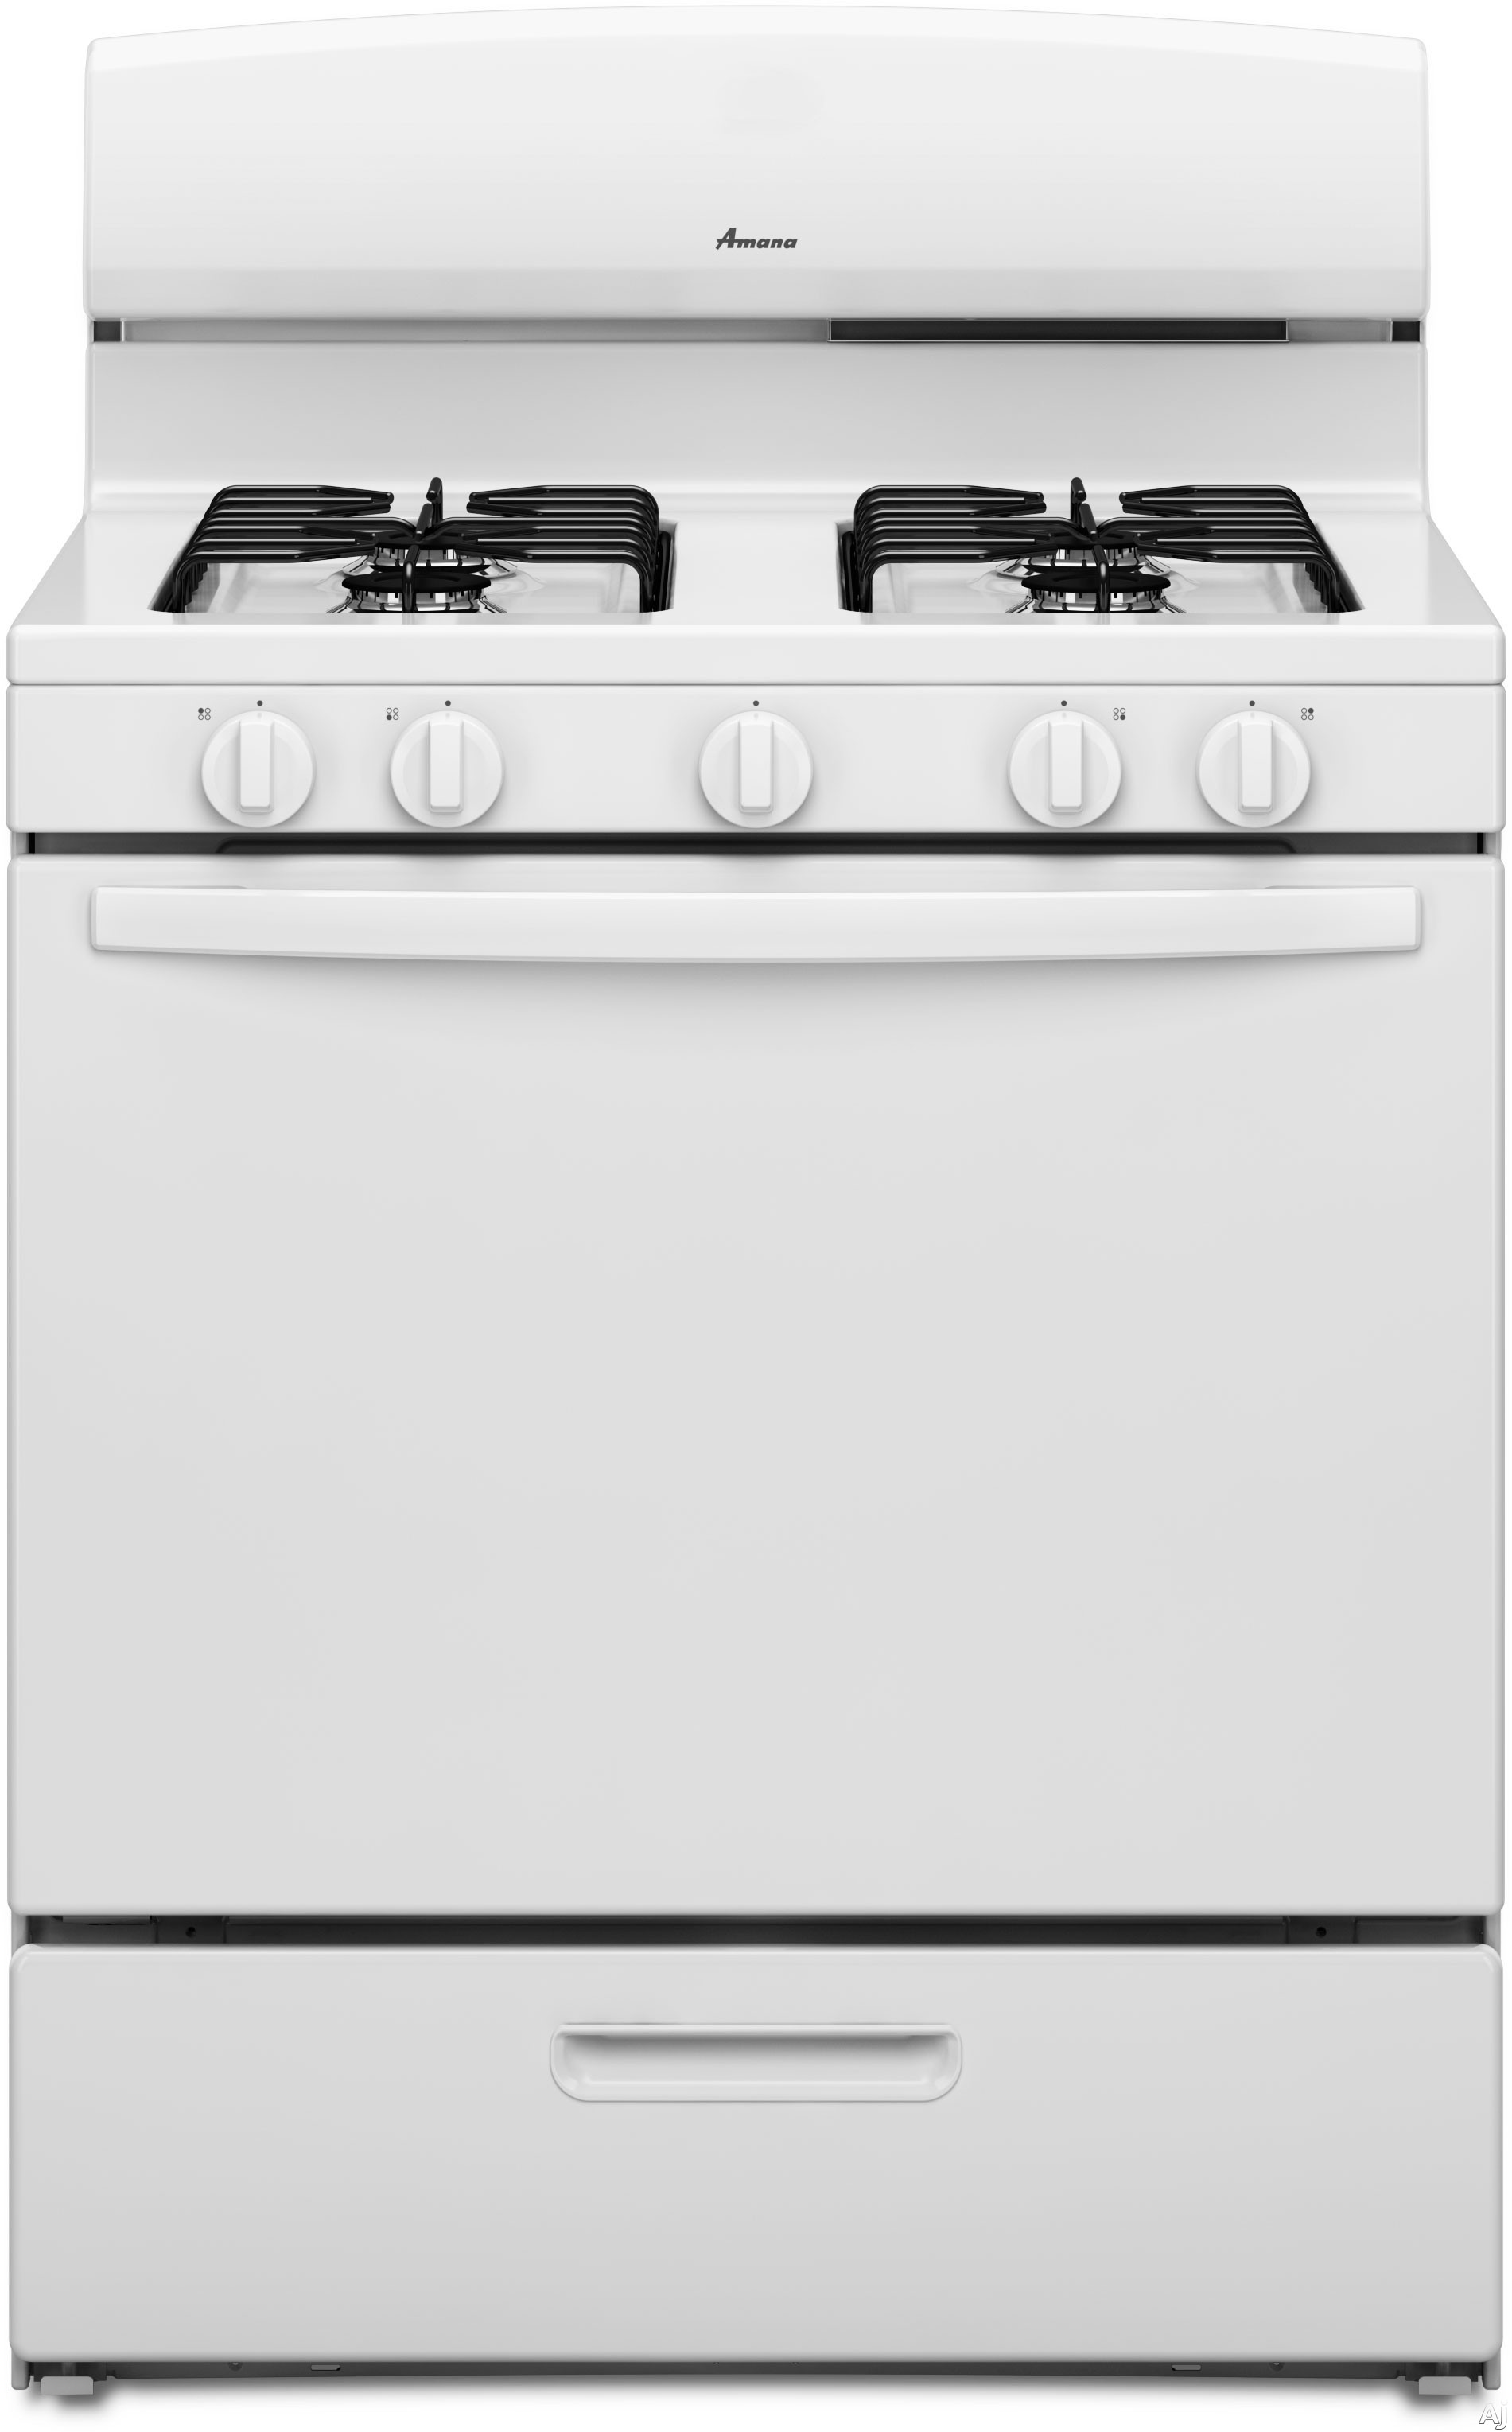 Amana Agr4230baw 30 Inch Freestanding Gas Range With 5.1 Cu. Ft. Capacity, 4 Sealed Burners, Spillsaver Upswept Cooktop, Broiler Drawer And Lp Gas Conversion Kit Included: White